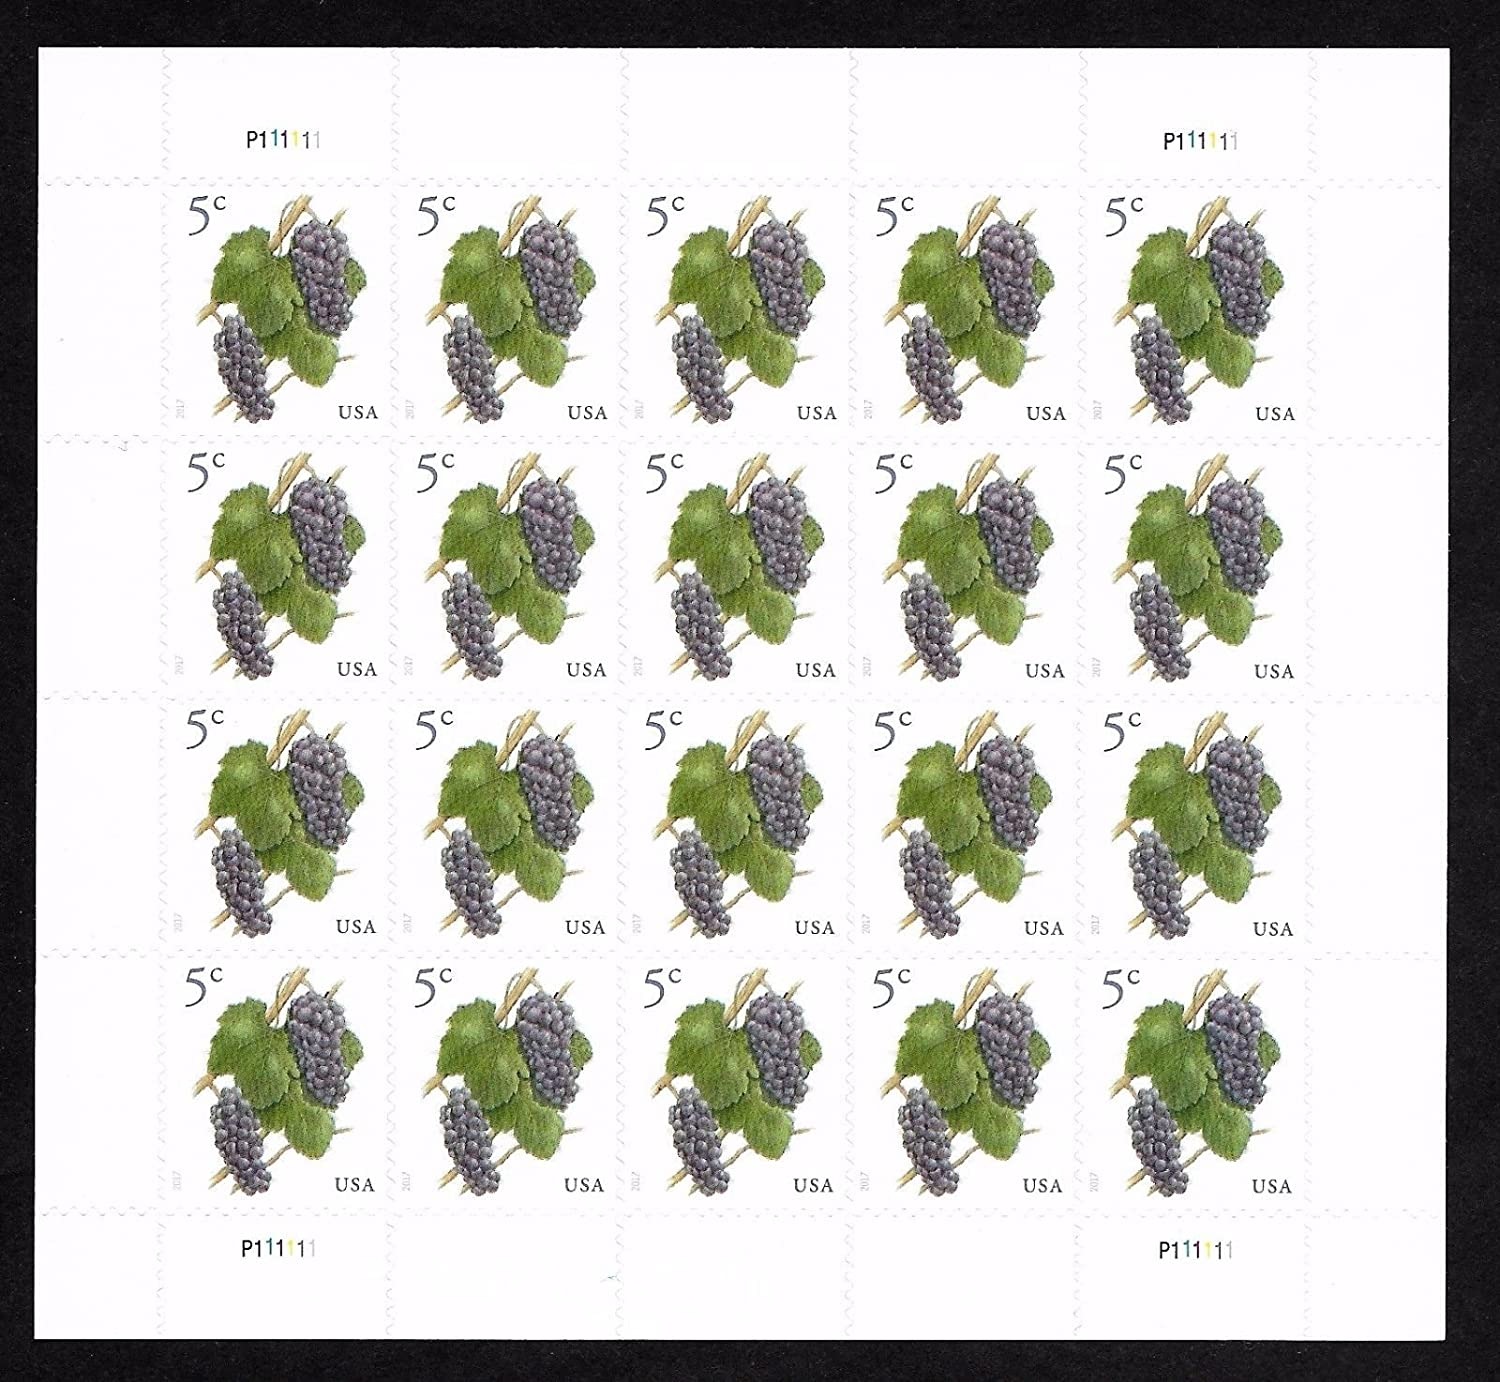 2017 Grapes 5 Cent Stamp In Sheet of Twenty Stamps Scott 5177